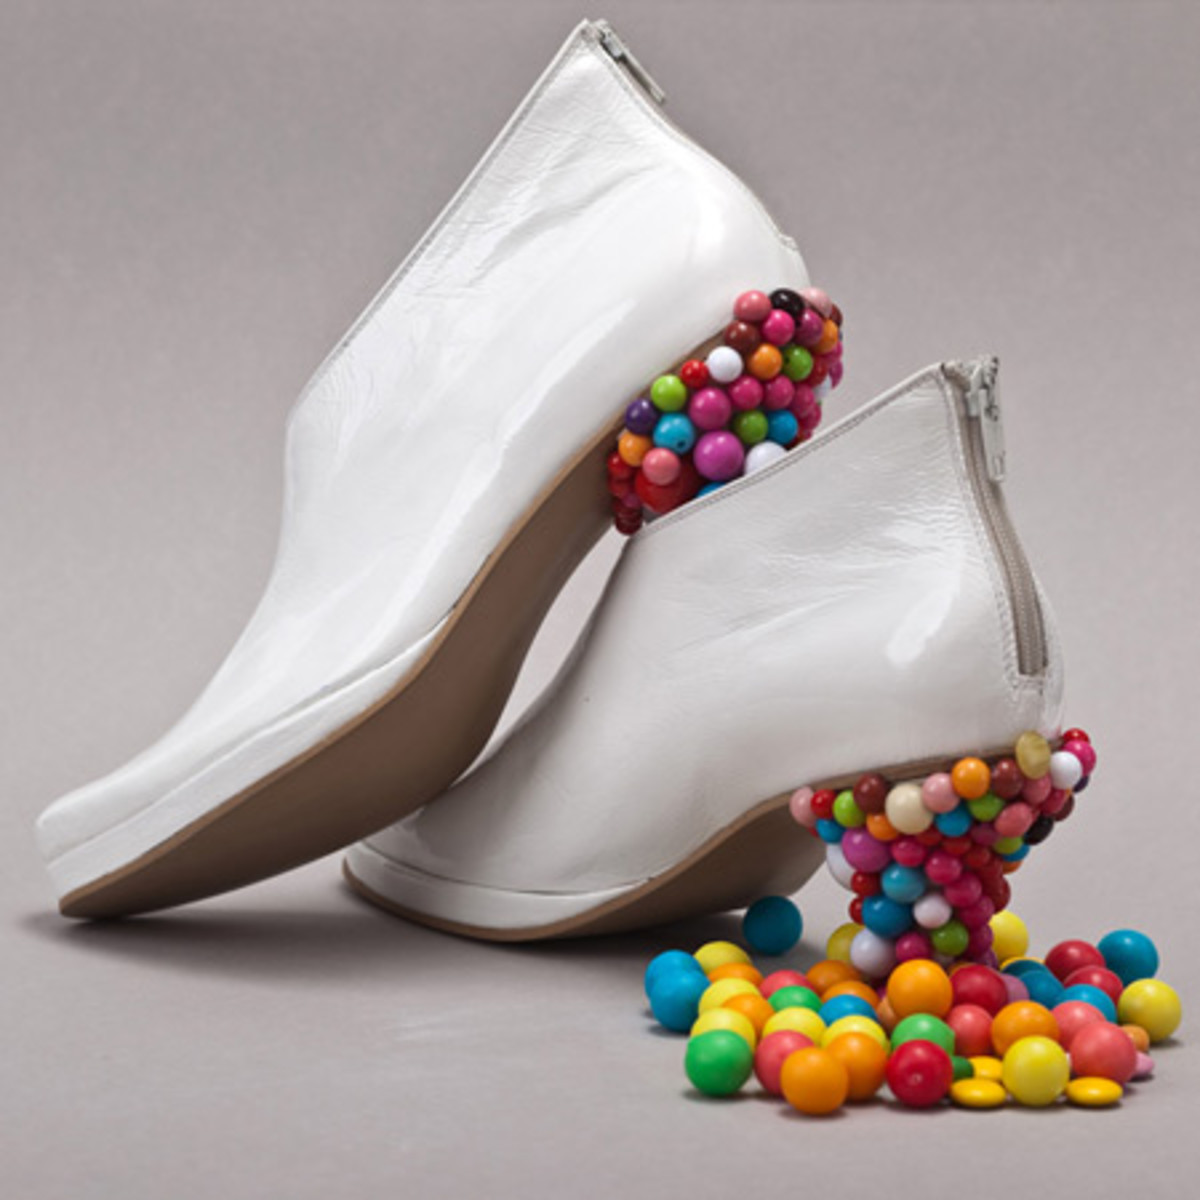 These shoes are a great way to get free candy – simply Superglue existing lollies and stand in a bowl of sweets at the next birthday party.